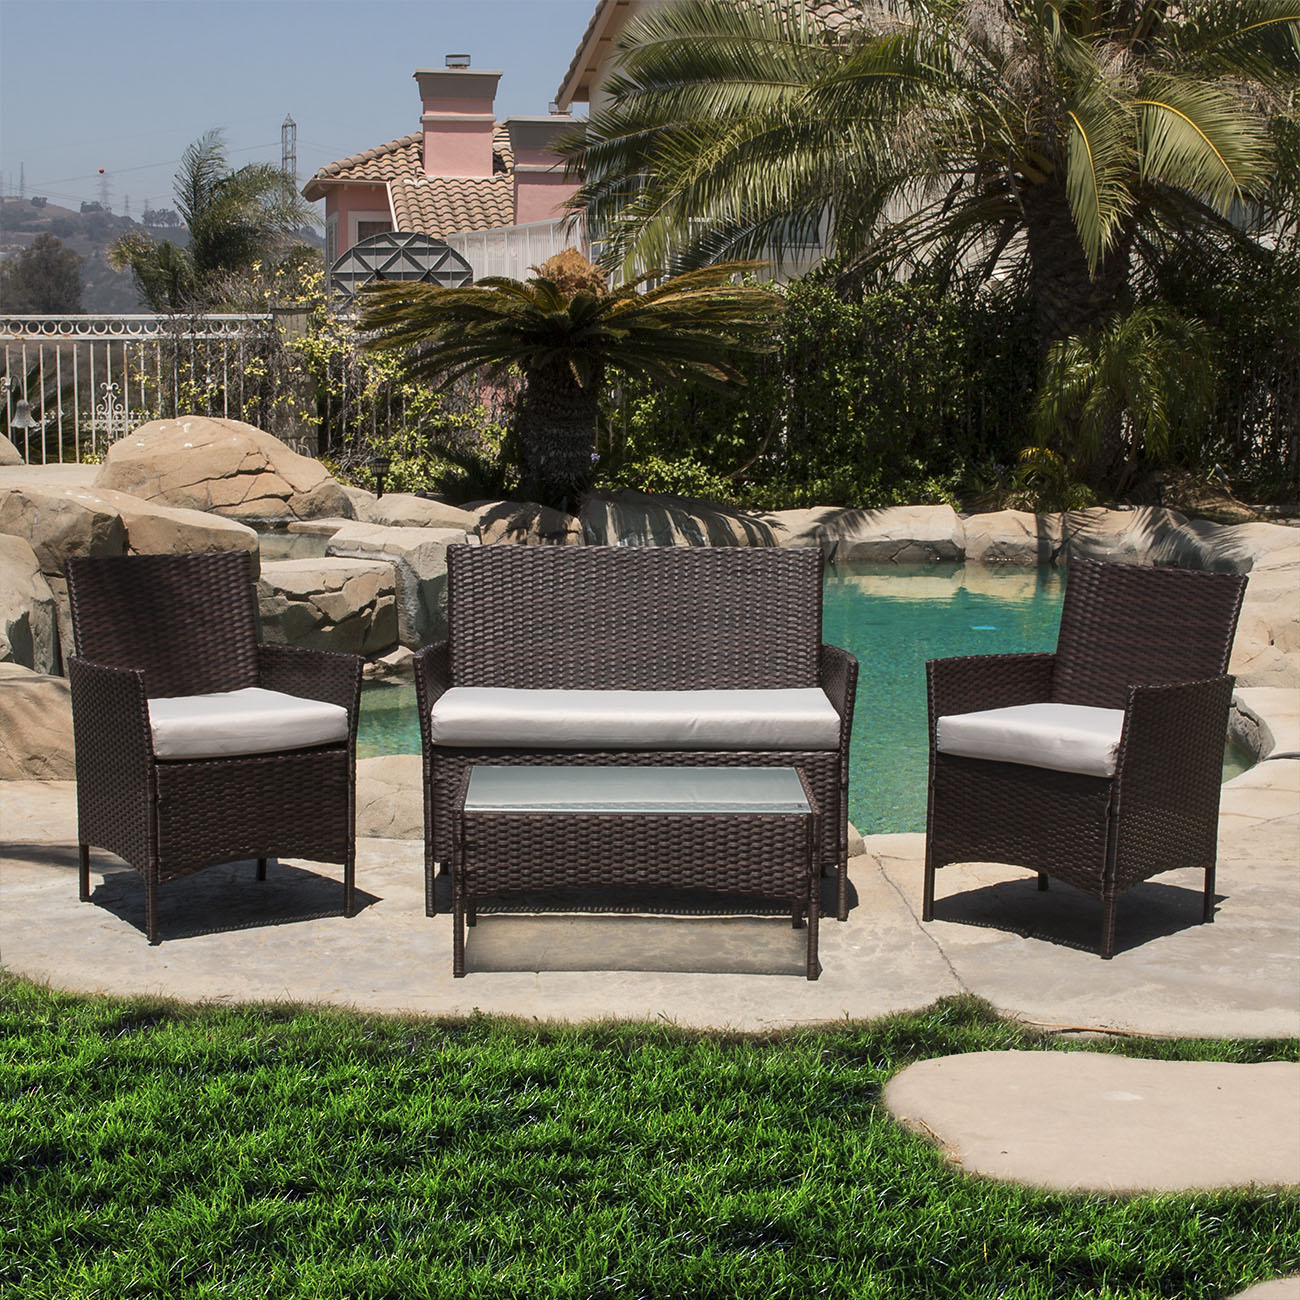 4 pc rattan furniture set outdoor patio garden sectional. Black Bedroom Furniture Sets. Home Design Ideas